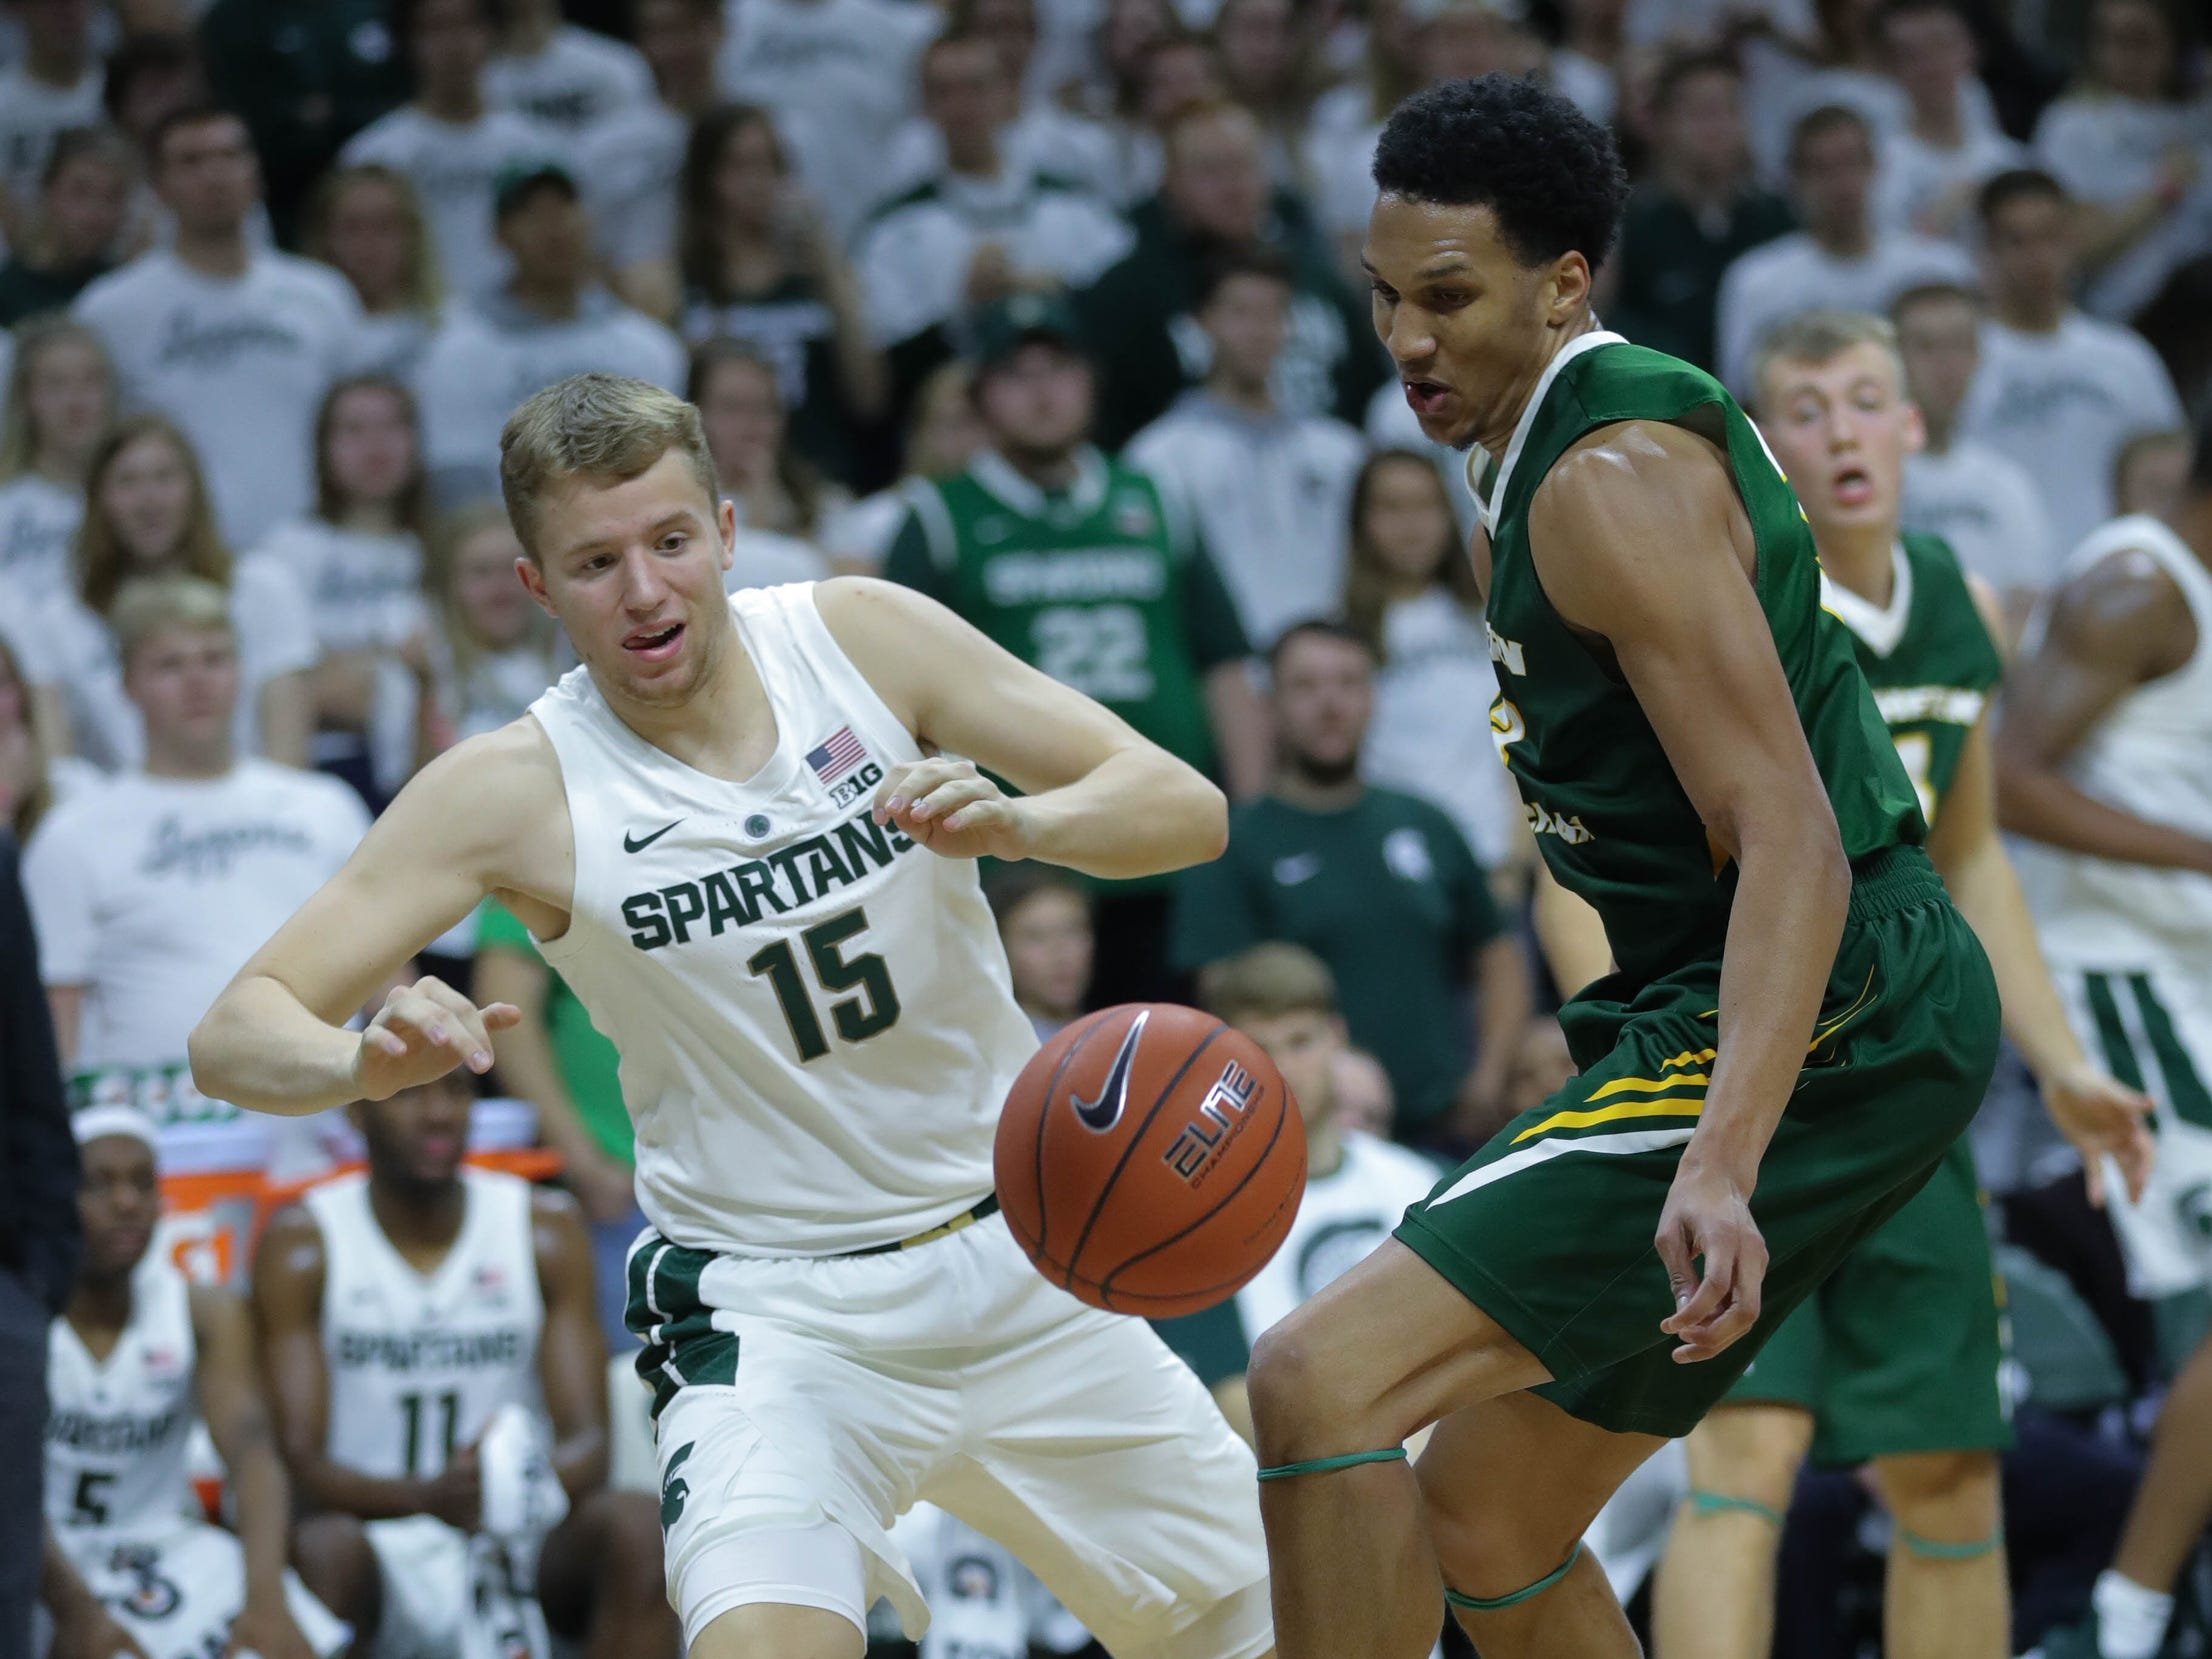 Michigan State forward Thomas Kithier goes for the loose ball against Northern Michigan Myles Howard during second half action Tuesday, October 30, 2018 at the Breslin Center in East Lansing, Mich.